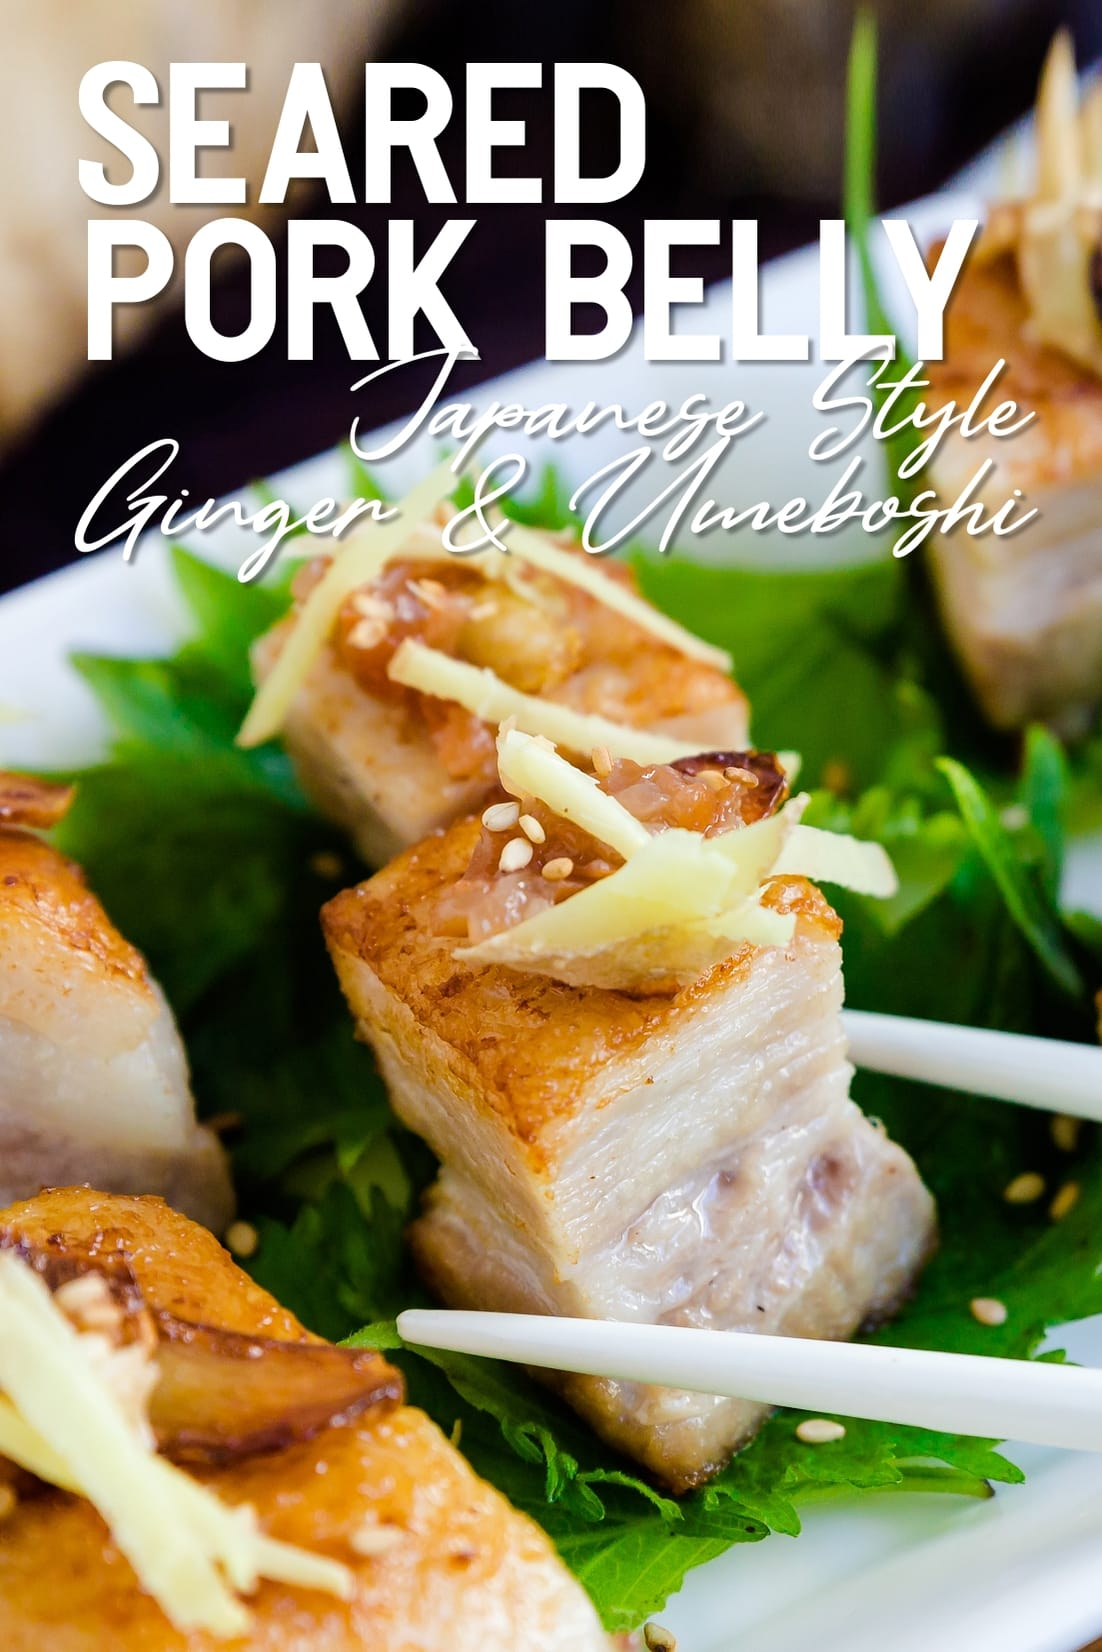 Japanese Style Seared Pork Belly with chopsticks